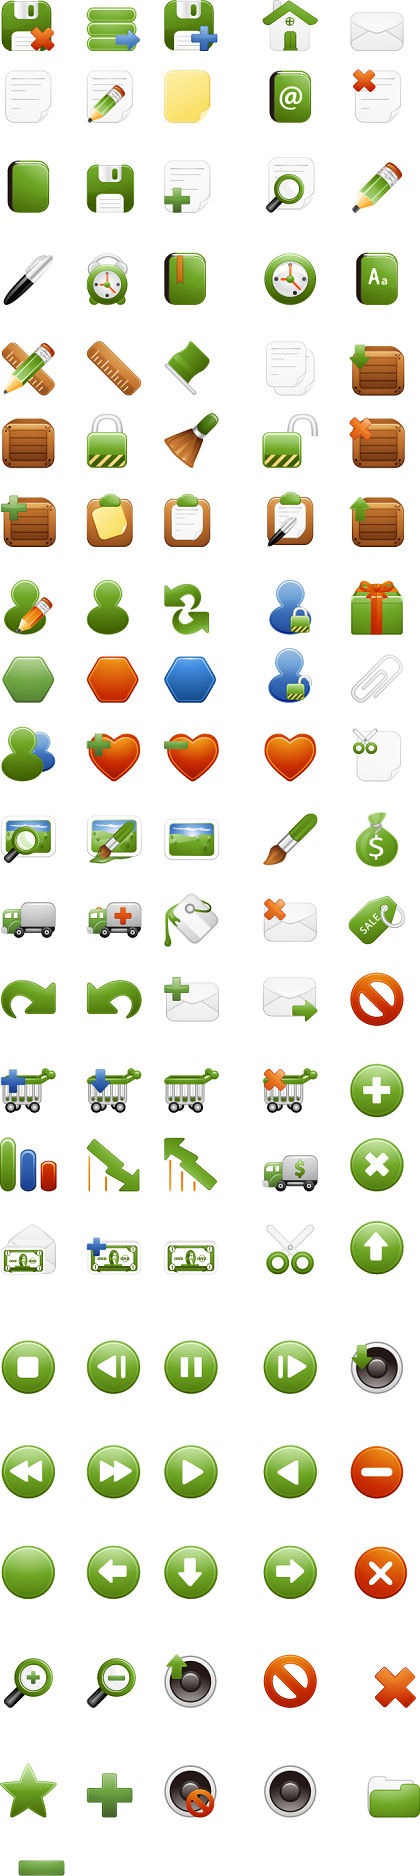 A Free Stock Vector Iconset by Milky-2